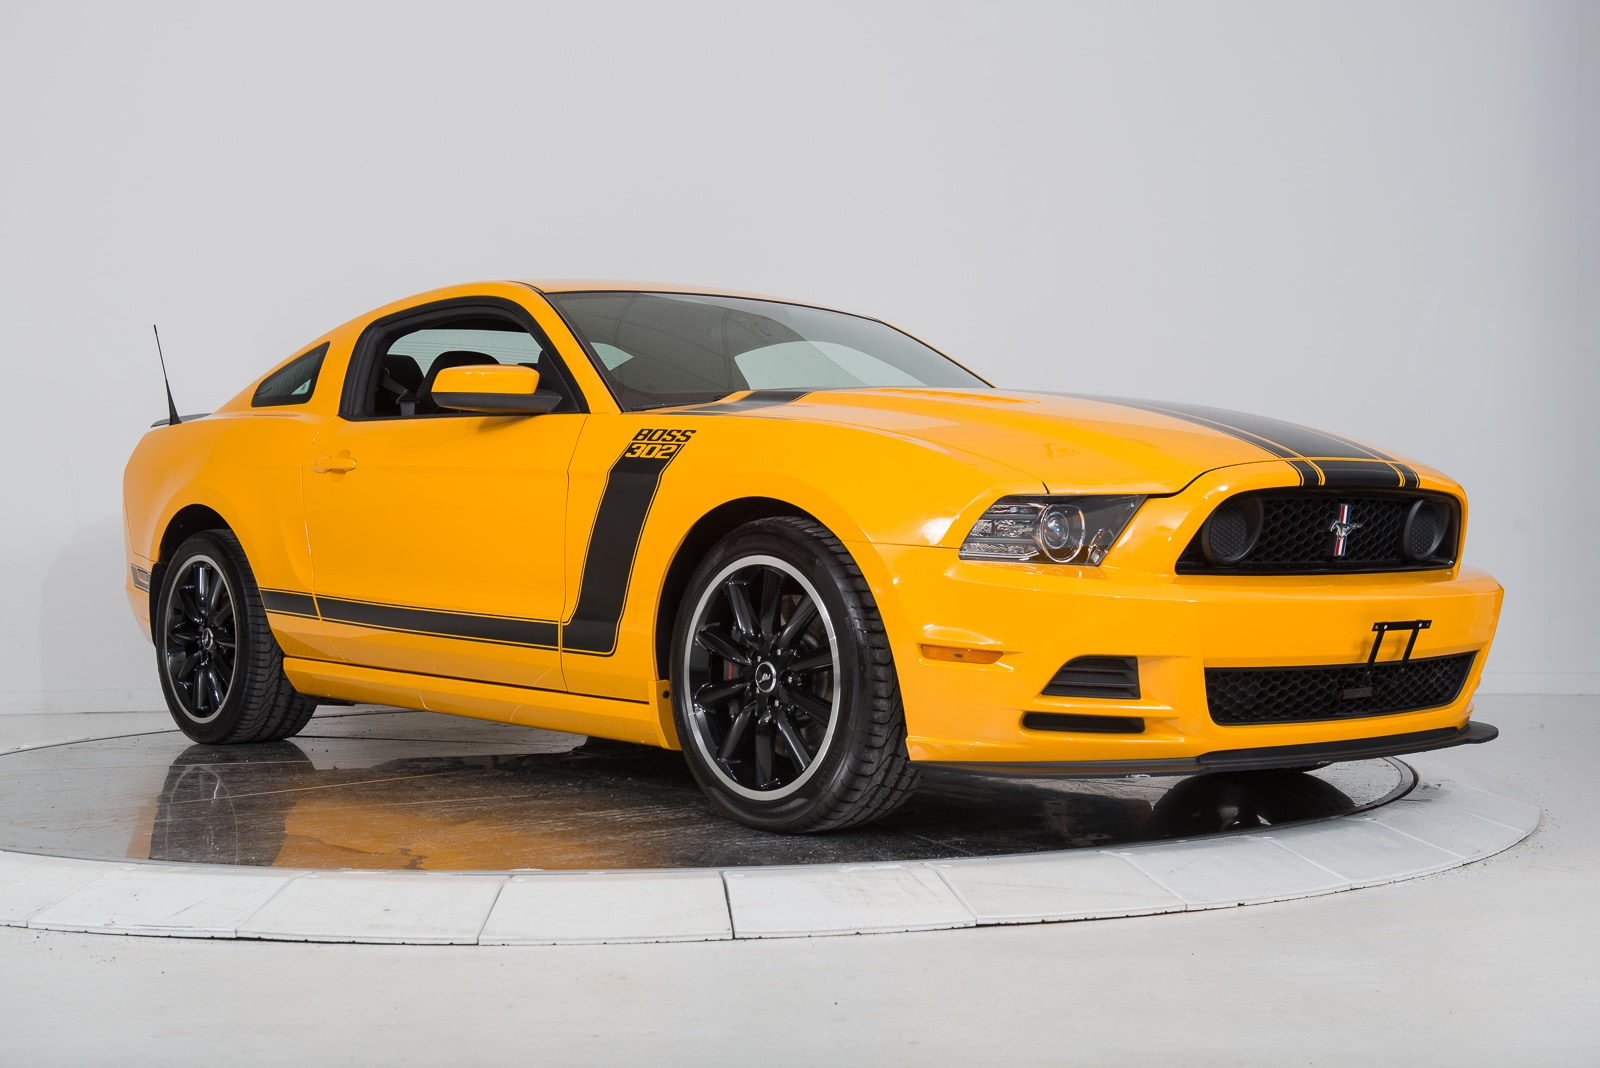 used 2013 ford mustang boss 302 for sale plainview near long island ny vin 1zvbp8cu0d5258008. Black Bedroom Furniture Sets. Home Design Ideas